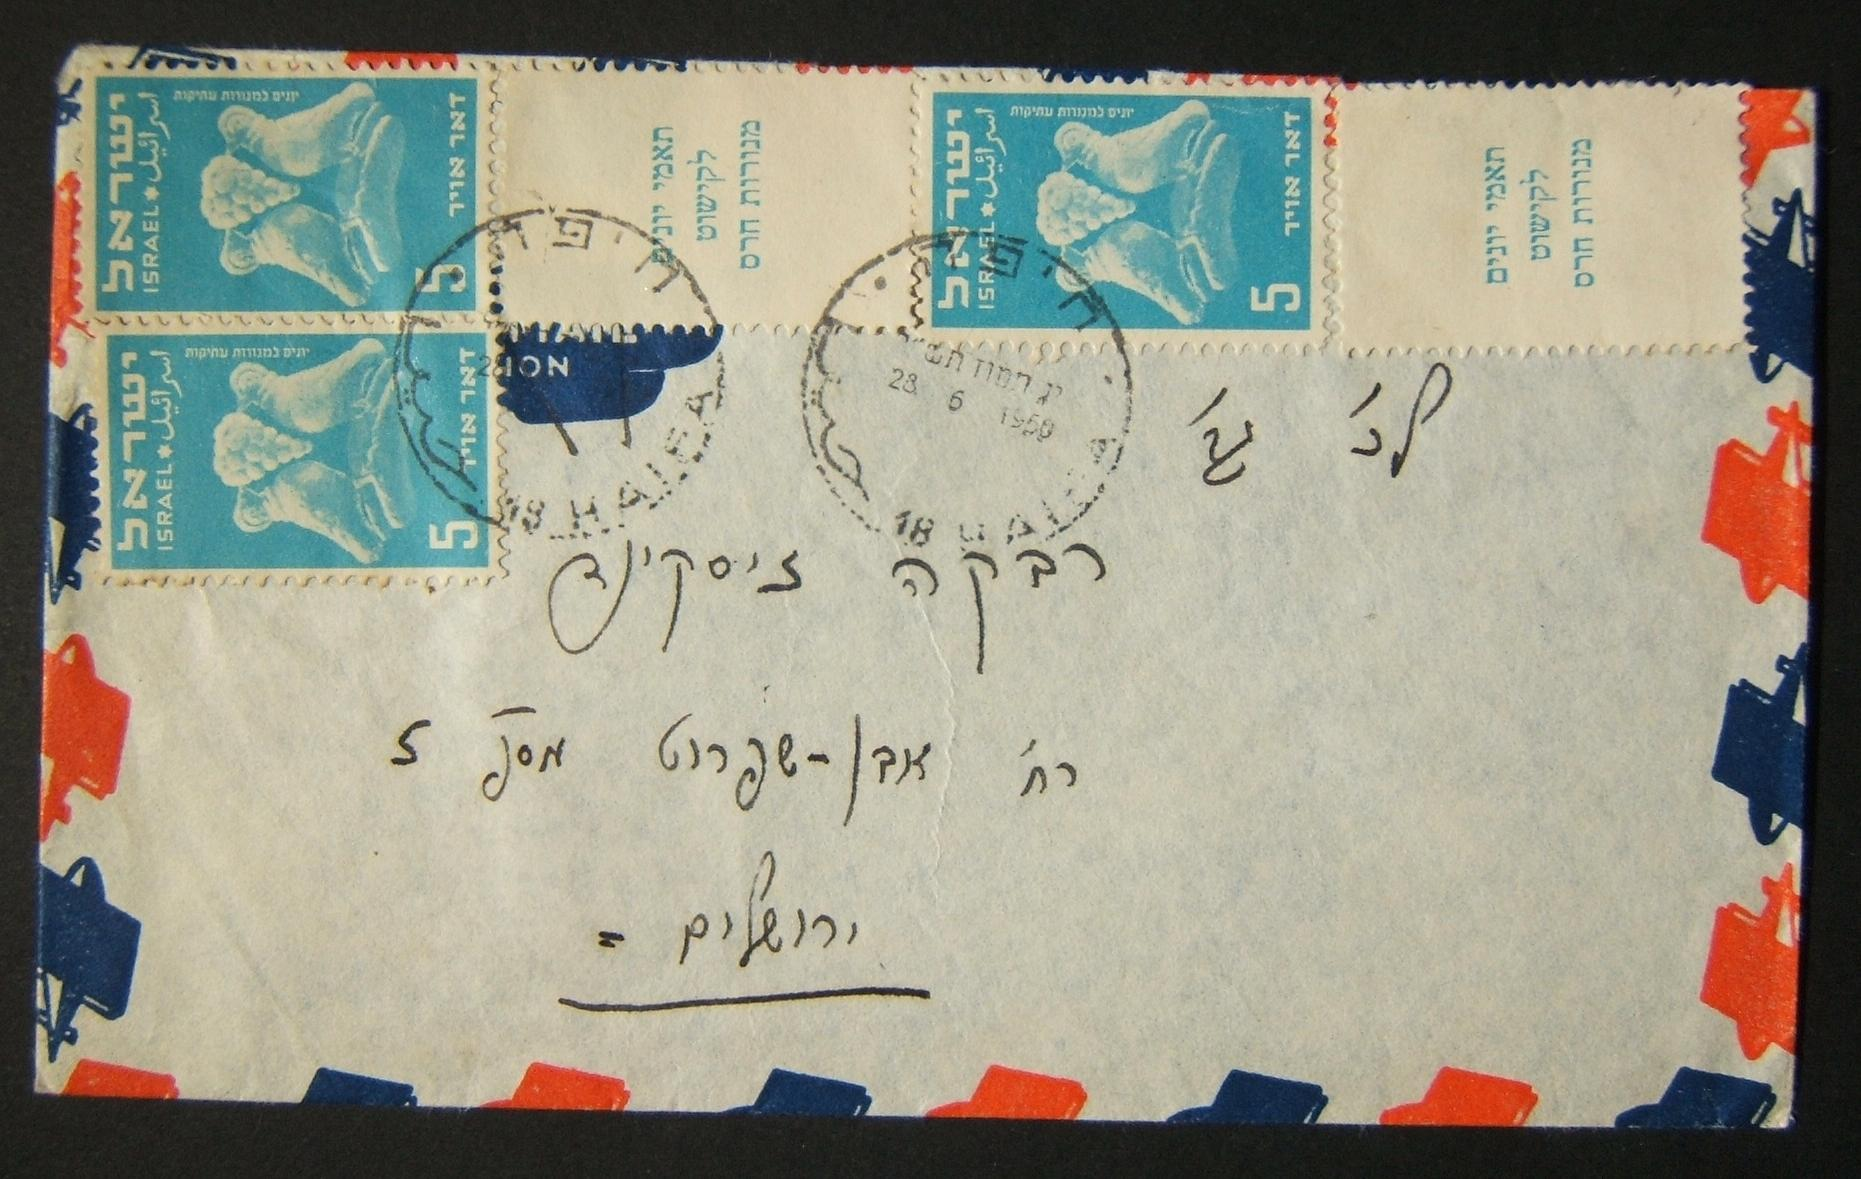 28-6-1950 Haifa to Jerusalem mail with half-tabbed 5 pruta 1st Airmail franks